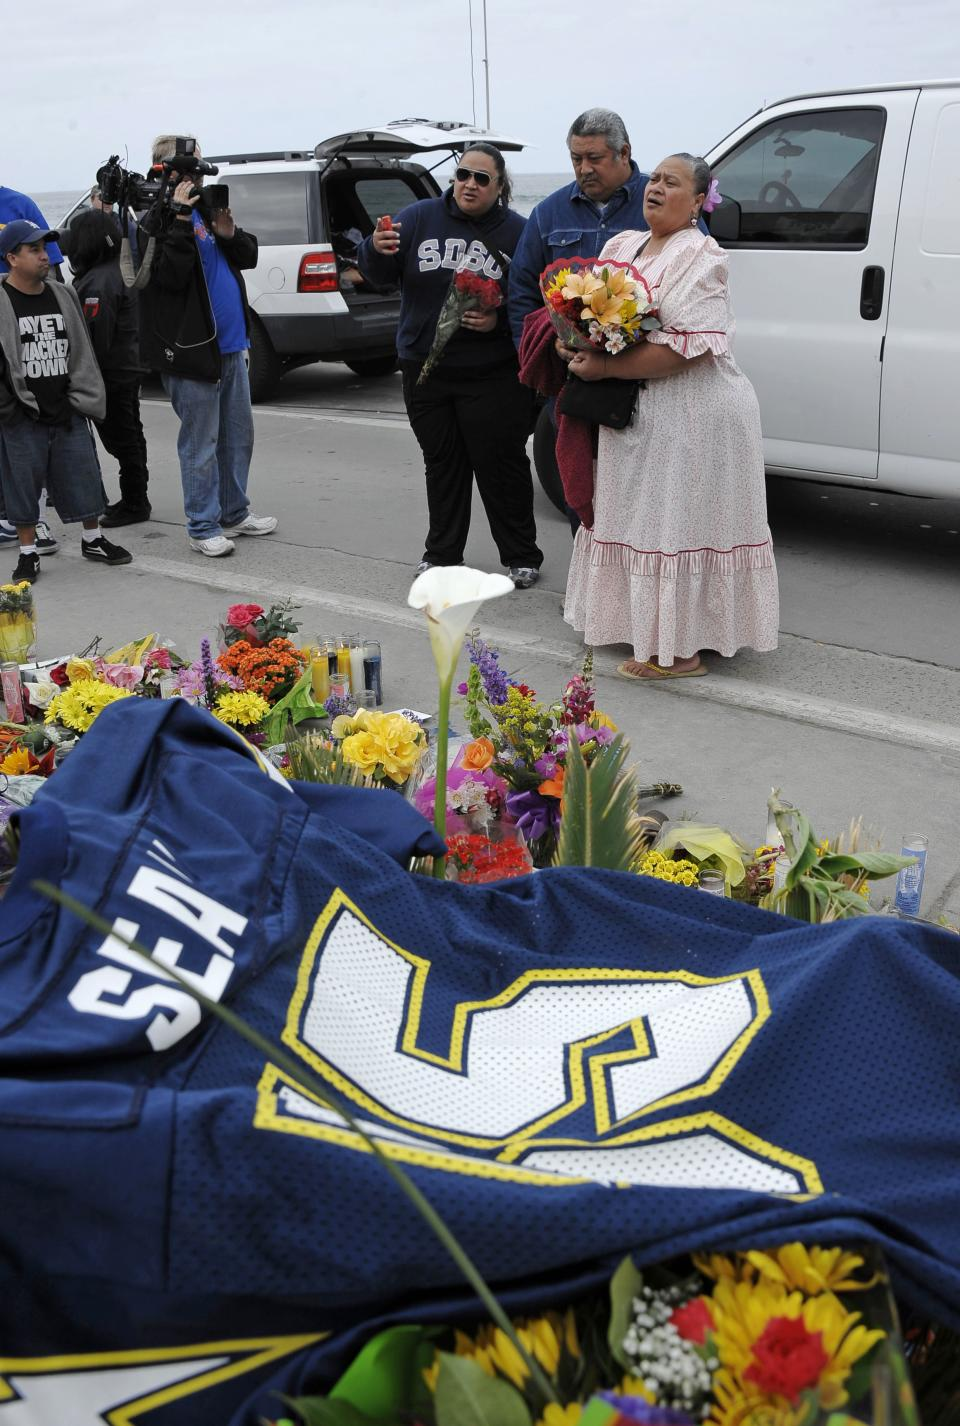 "Family members of former NFL star Junior Seau put flowers at memorial in the driveway of his home, Thursday, May 3, 2012, in Oceanside, Calif. Seau's apparent suicide stunned an entire city and saddened former teammates who recalled the former NFL star's ferocious tackles and habit of calling everybody around him ""Buddy."" (AP Photo/Denis Poroy)"